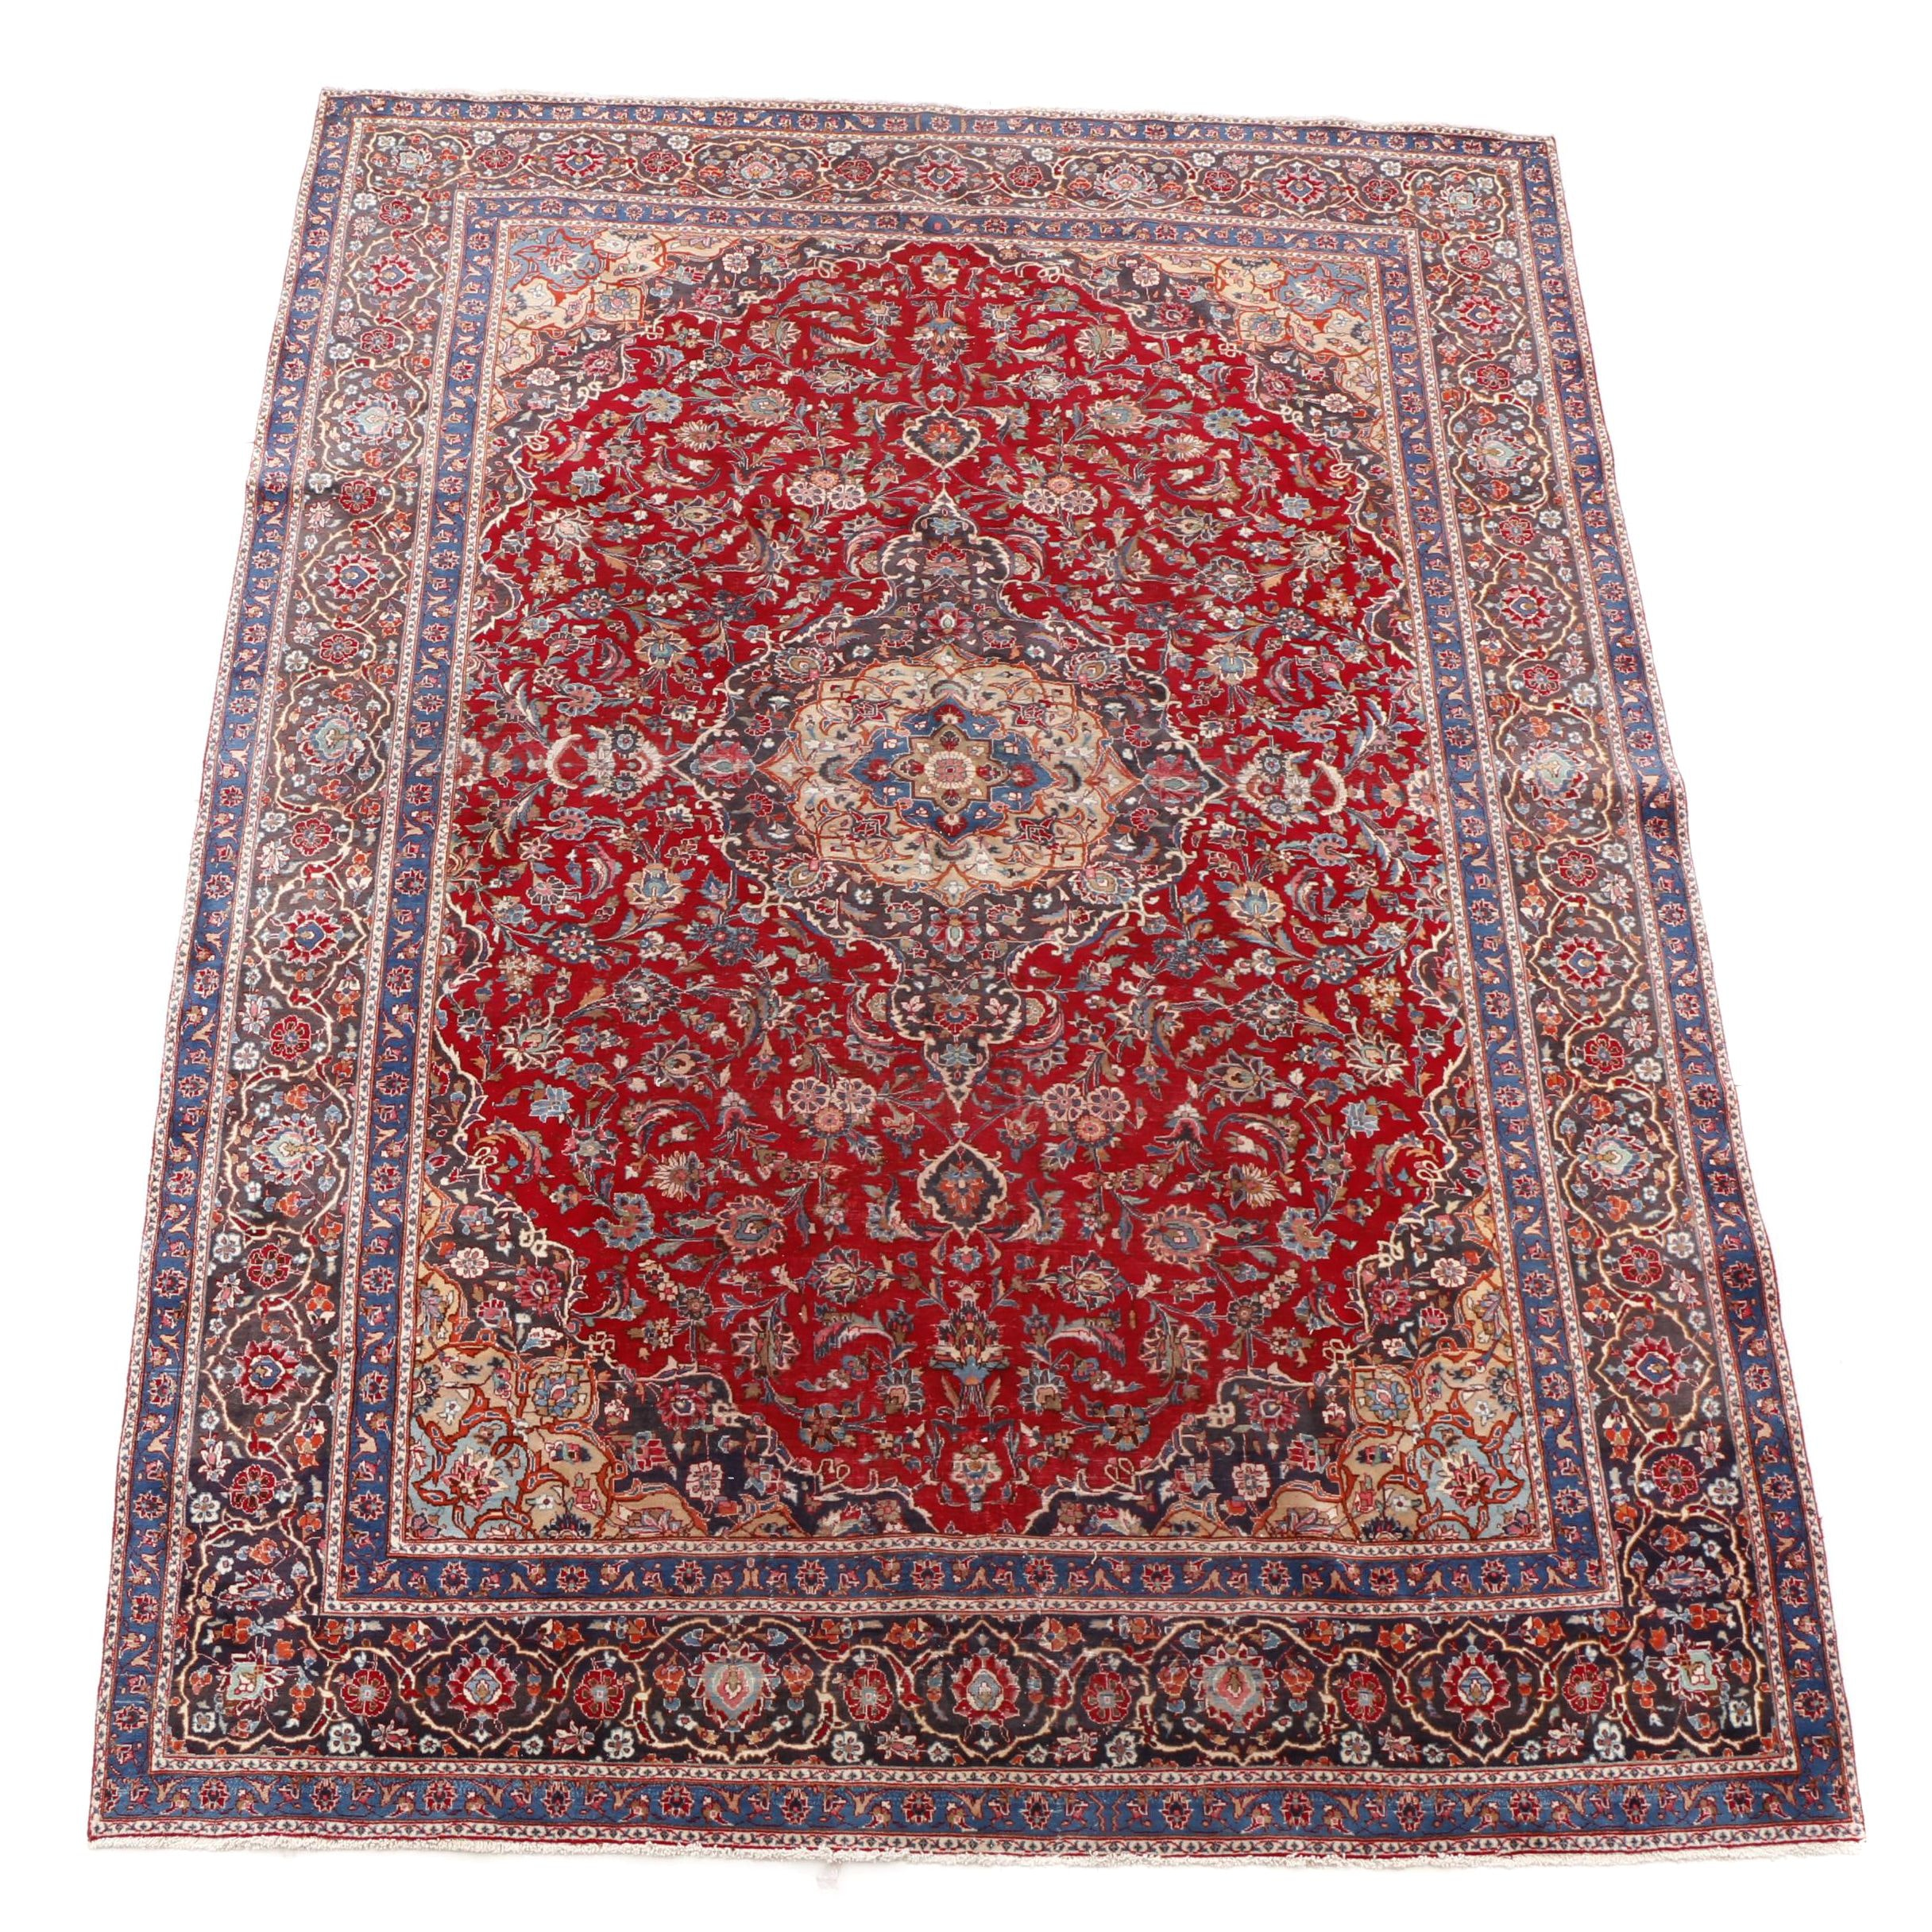 Hand-Knotted Persian Kashan Room-Sized Rug